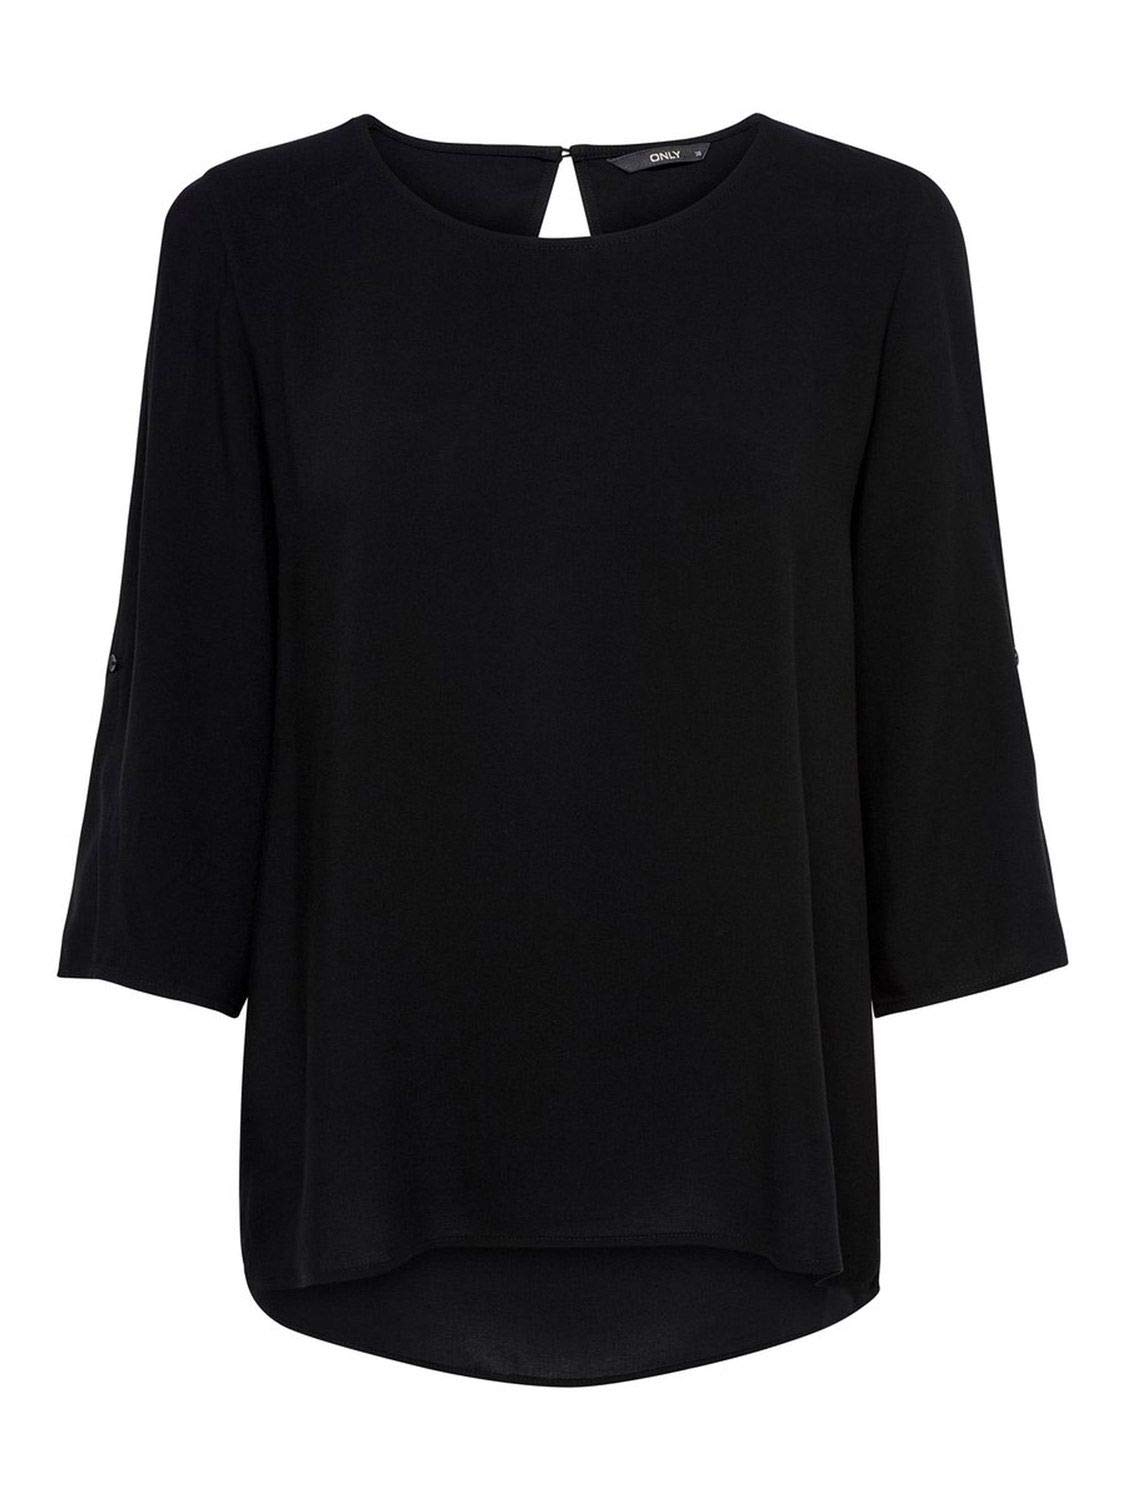 Only Women's 15173435BLACK Black Viscose Blouse